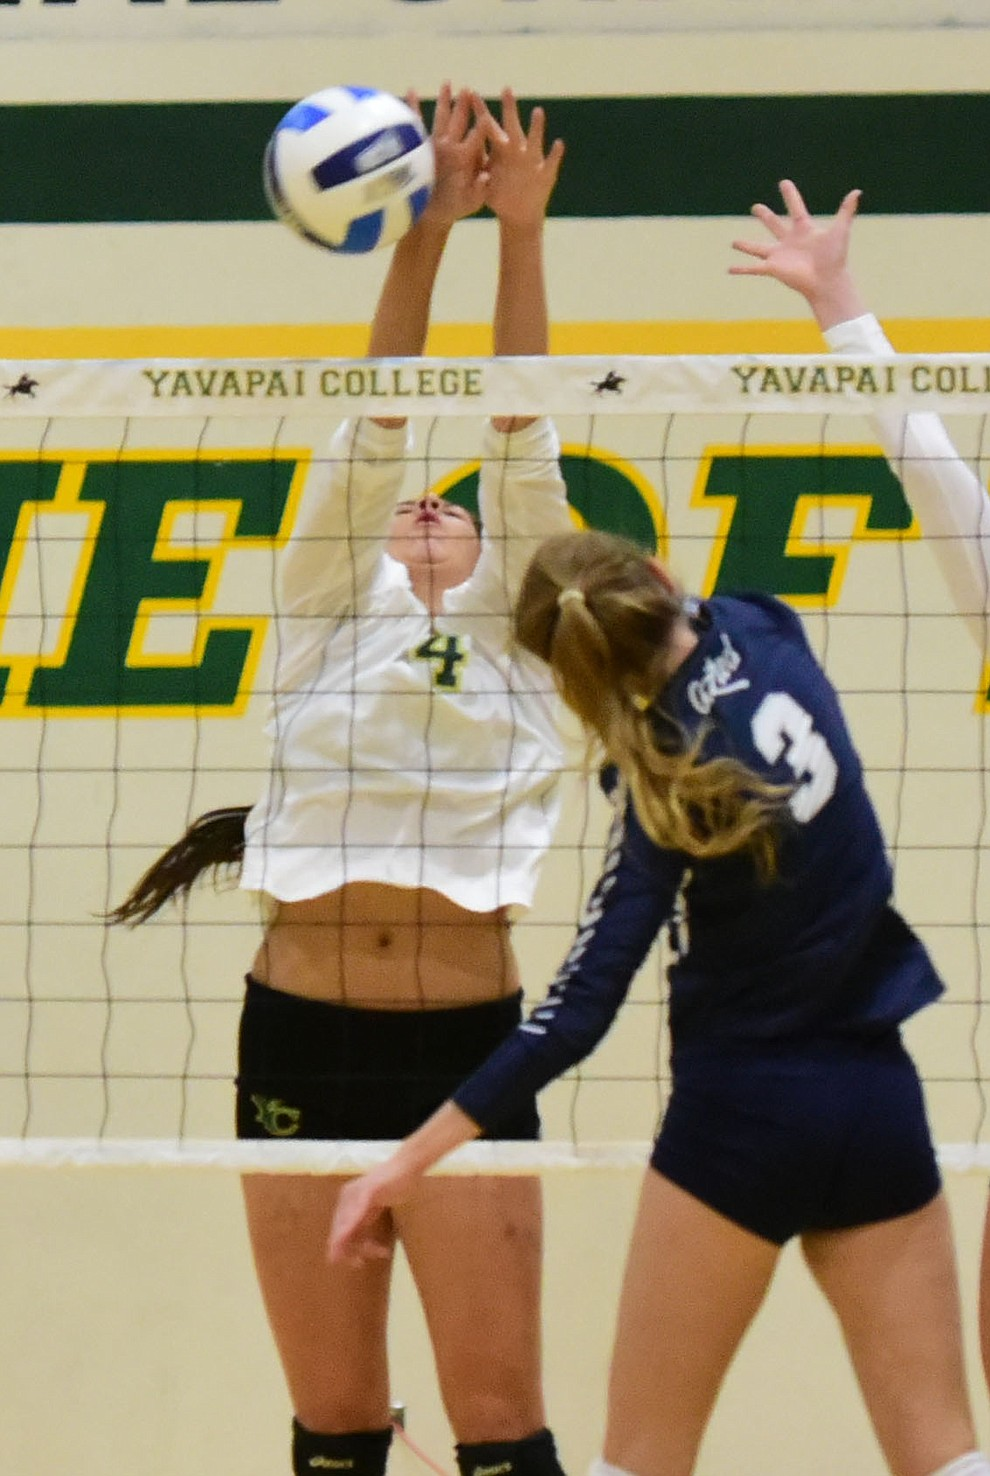 Yavapai's Kaytlin Yost (4) makes a block as the Lady Roughriders take on Pima Community College Wednesday night in Prescott.   (Les Stukenberg/The Daily Courier Photo)